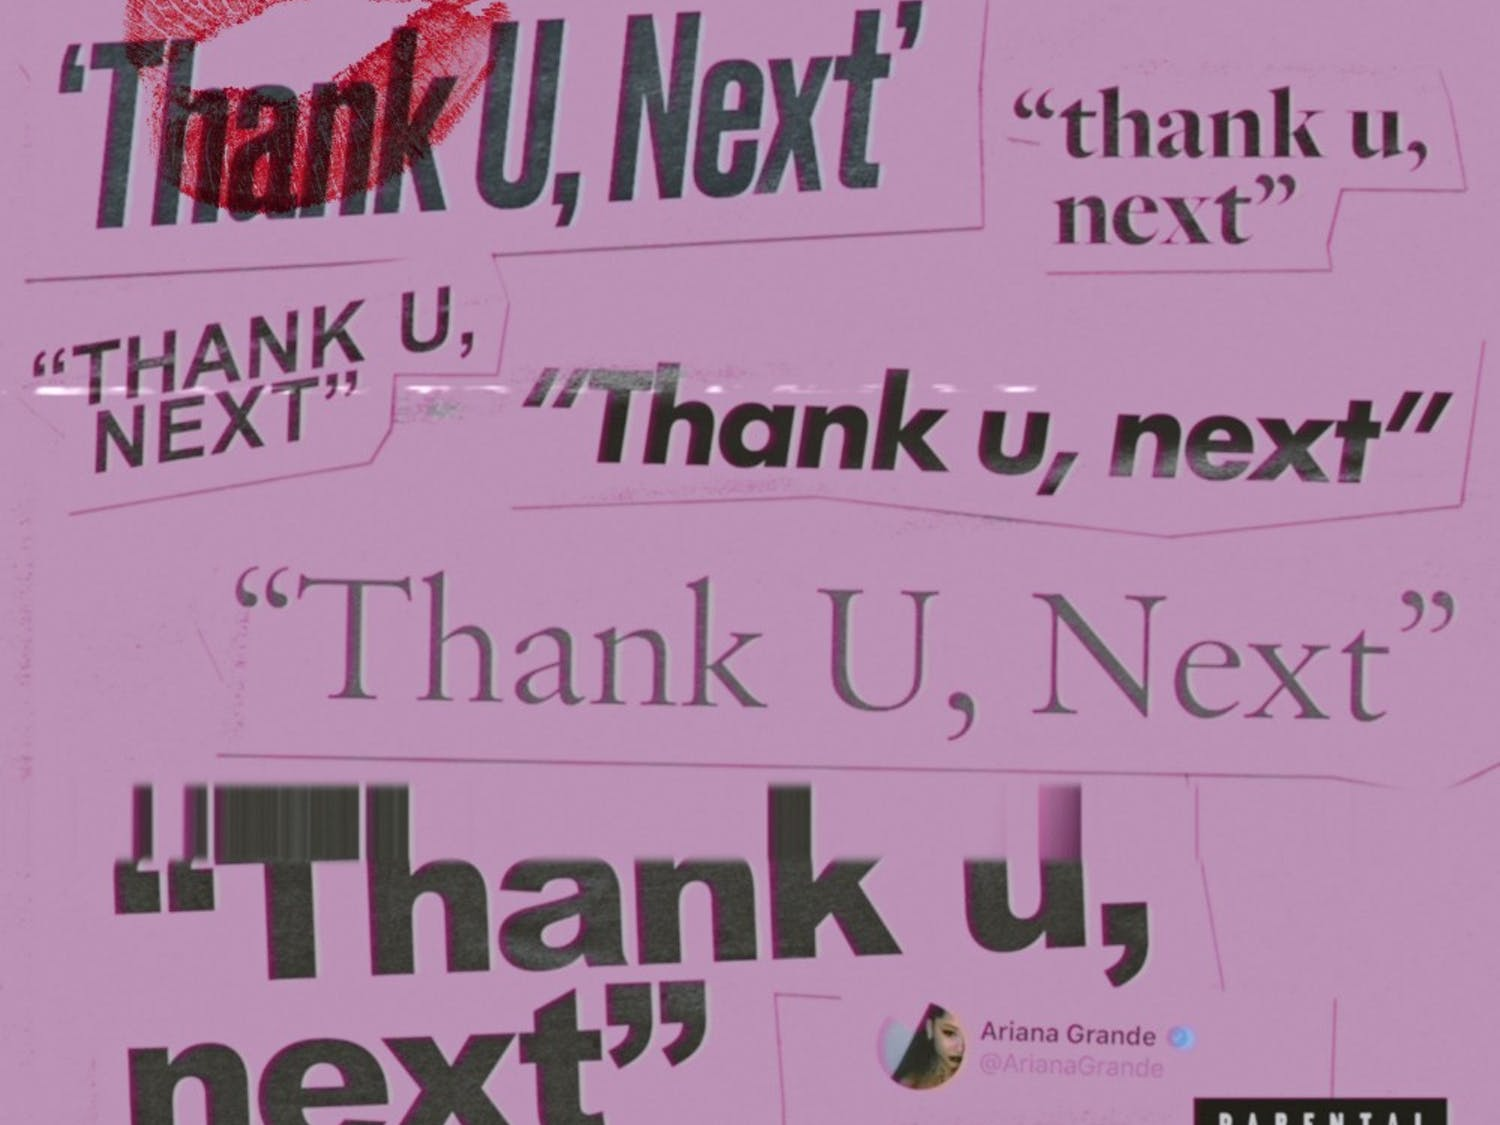 Ariana Grande's fifth studio album thank u, next was released on Feb. 8.